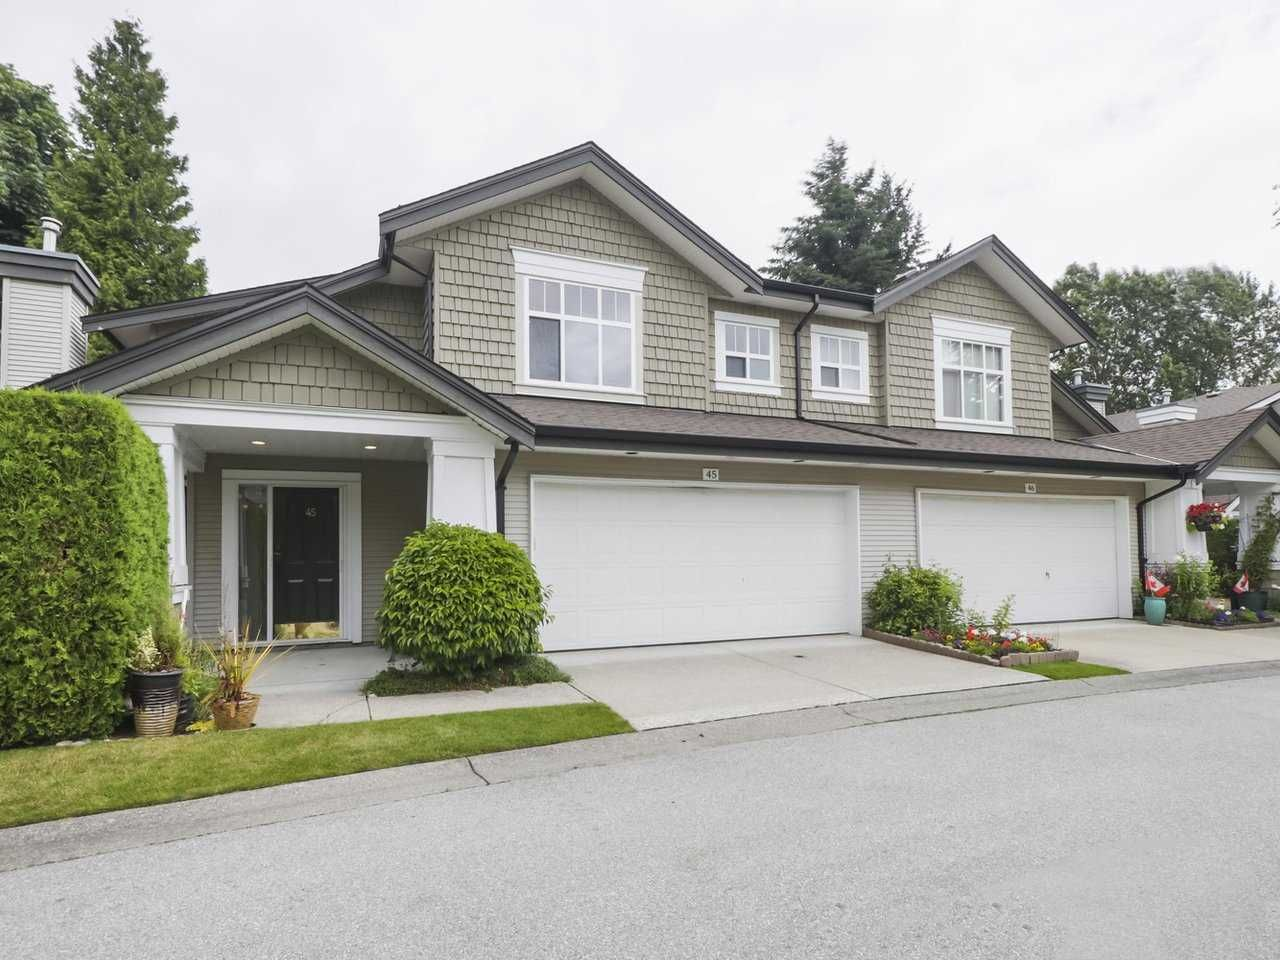 """Main Photo: 45 14877 33 Avenue in Surrey: King George Corridor Townhouse for sale in """"SANDHURST"""" (South Surrey White Rock)  : MLS®# R2513758"""